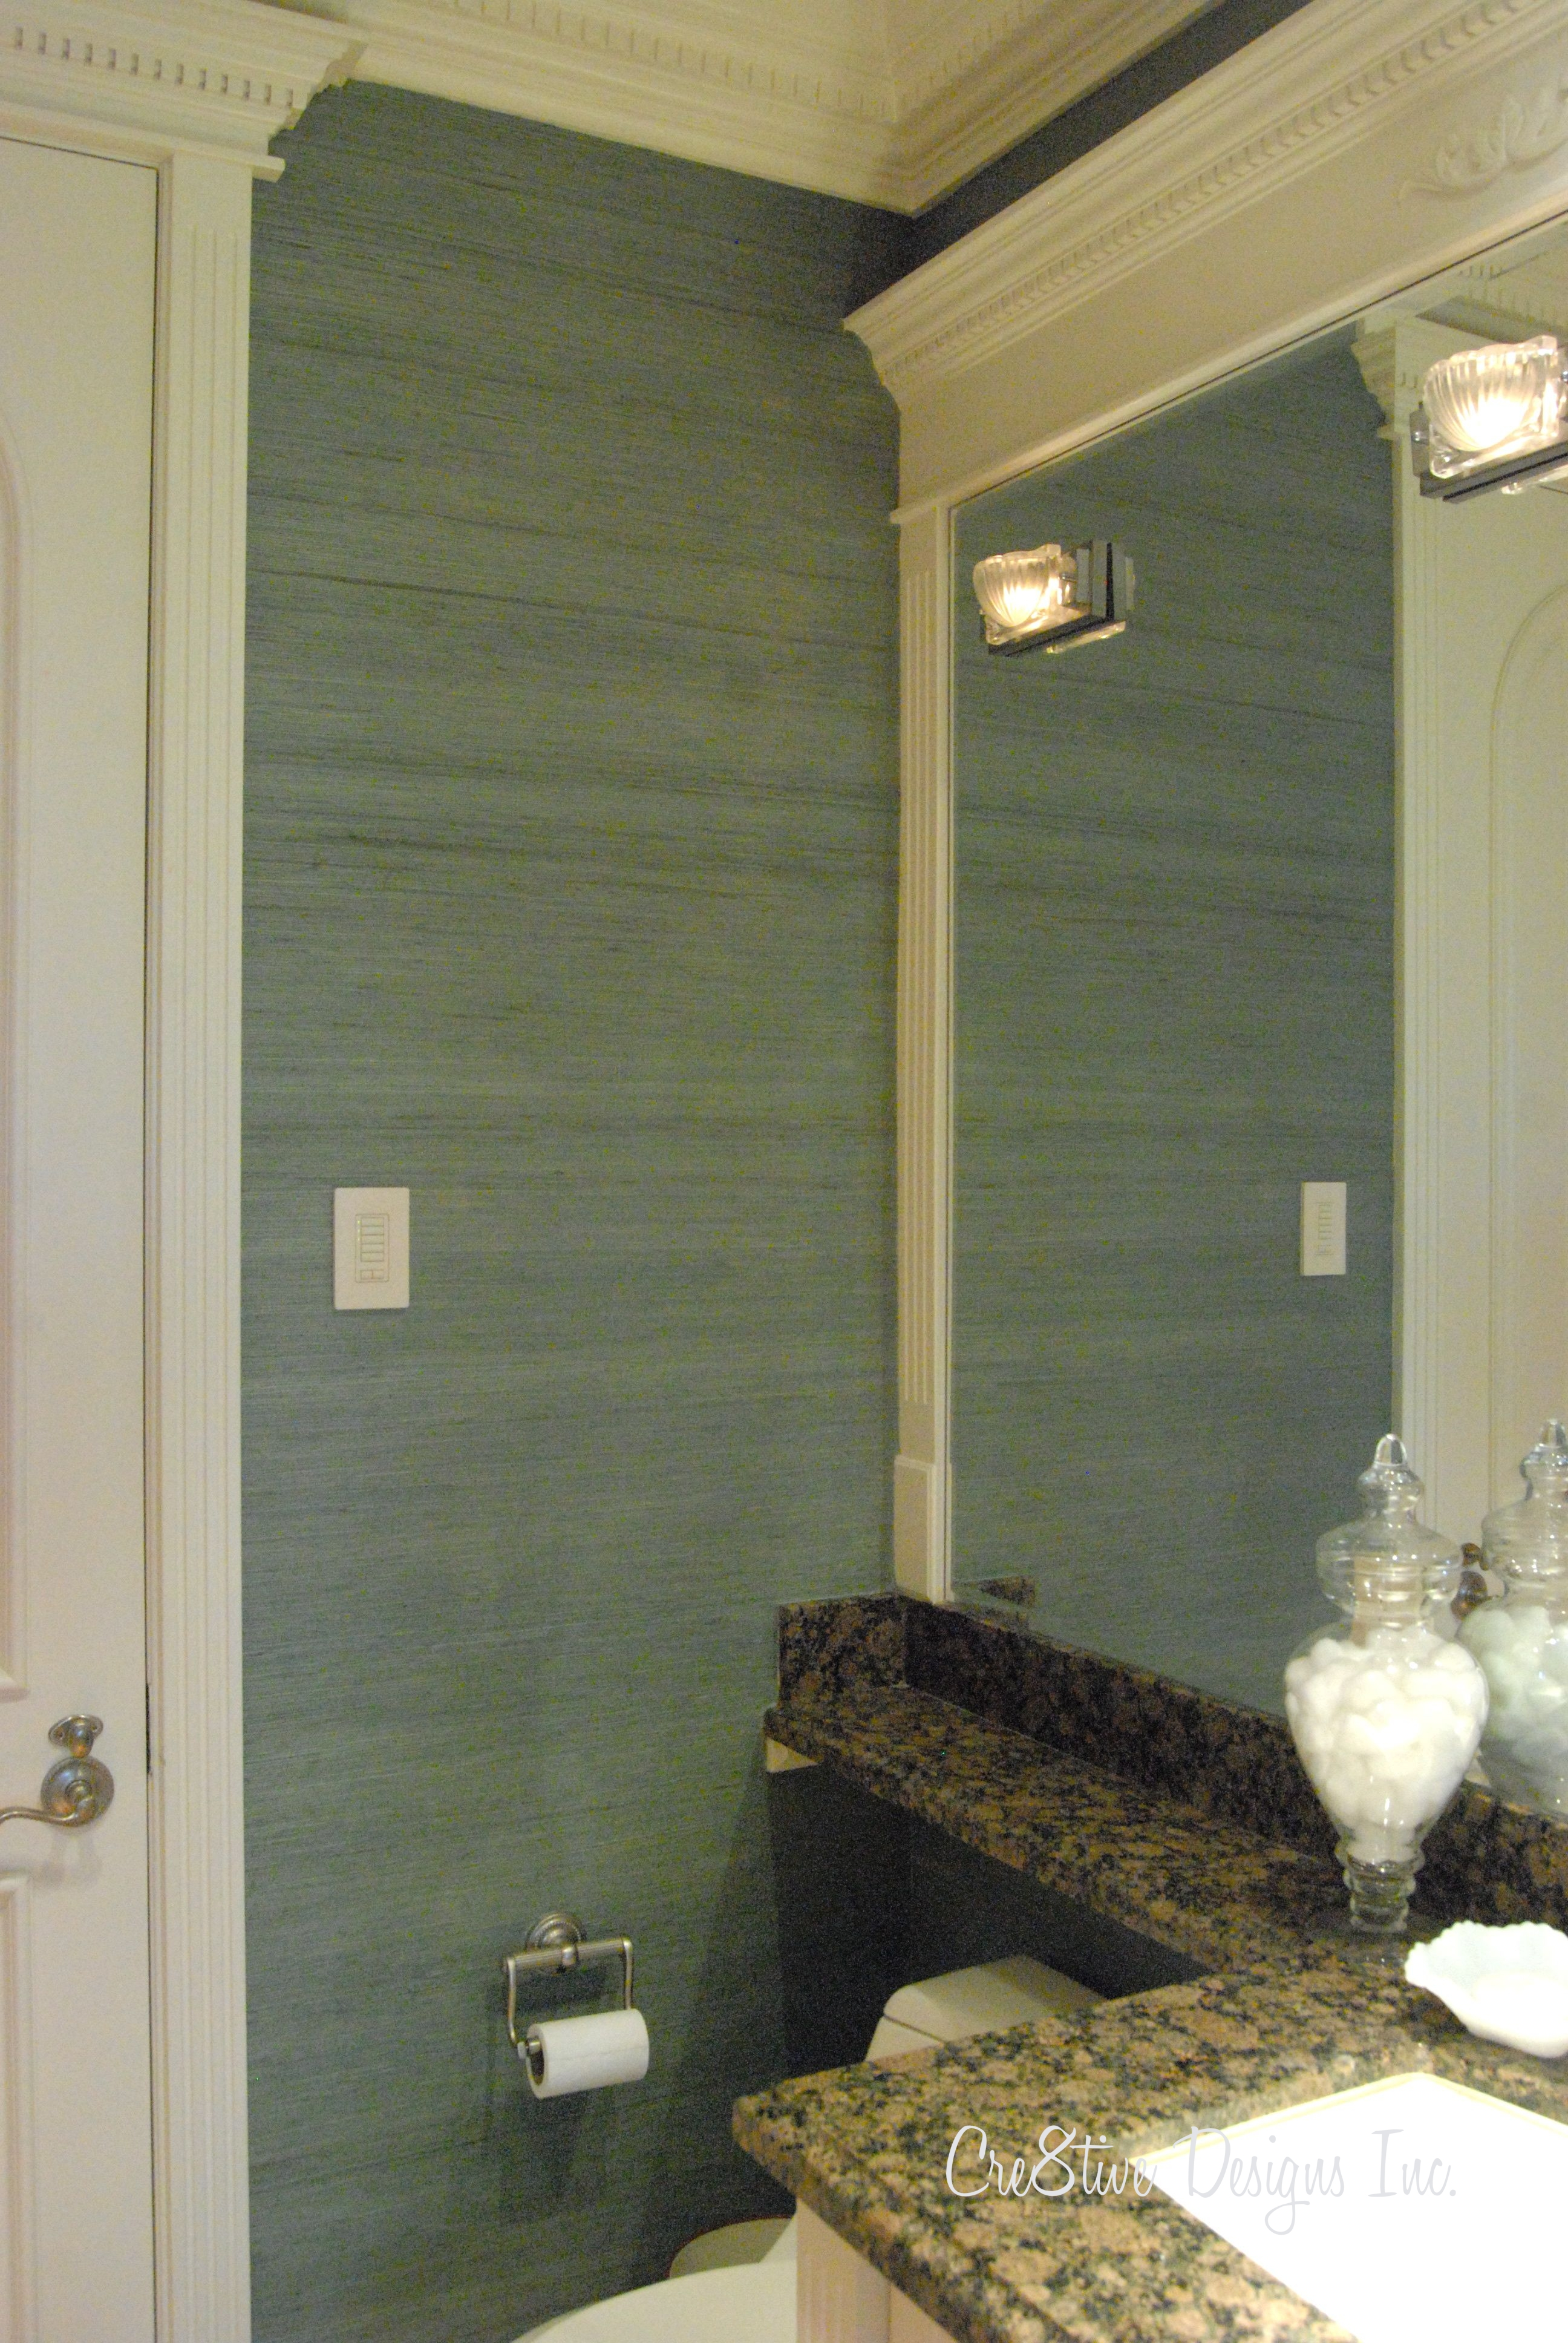 Wallpaper For Bathrooms Wall Covering : Can i use grasscloth wallpaper in a bathroom